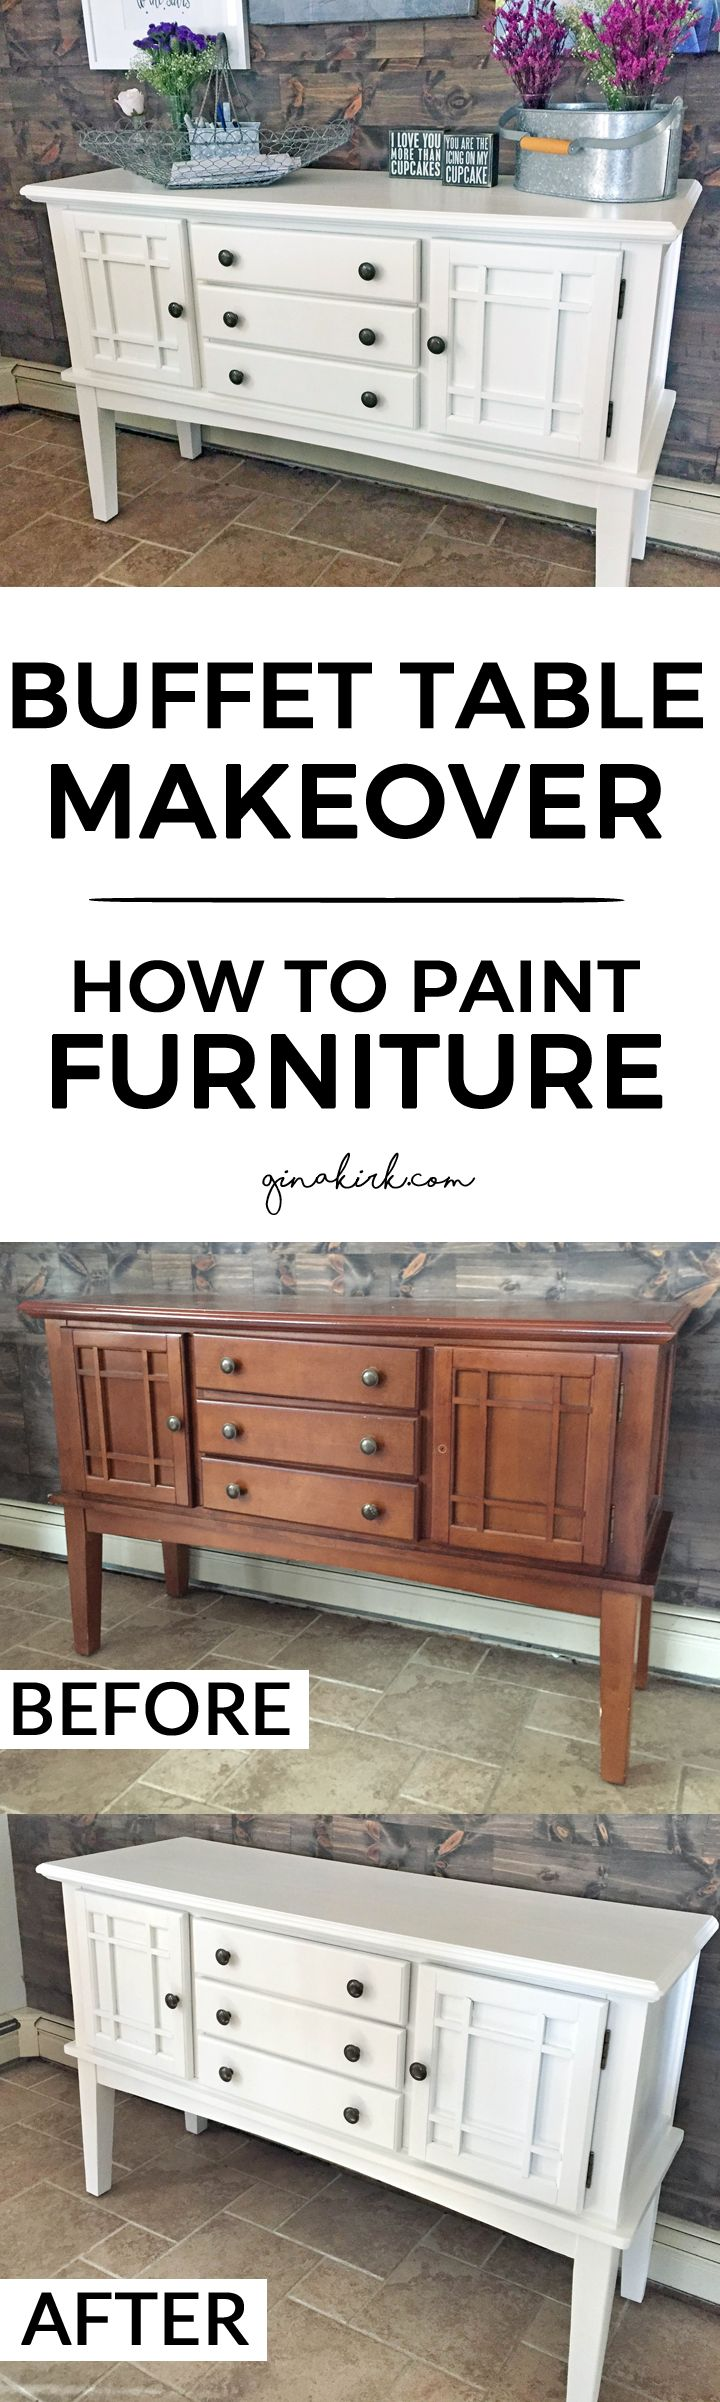 Buffet table makeover | How to paint furniture | The best furniture primer | Refinishing furniture easily | GinaKirk.com @ginaekirk